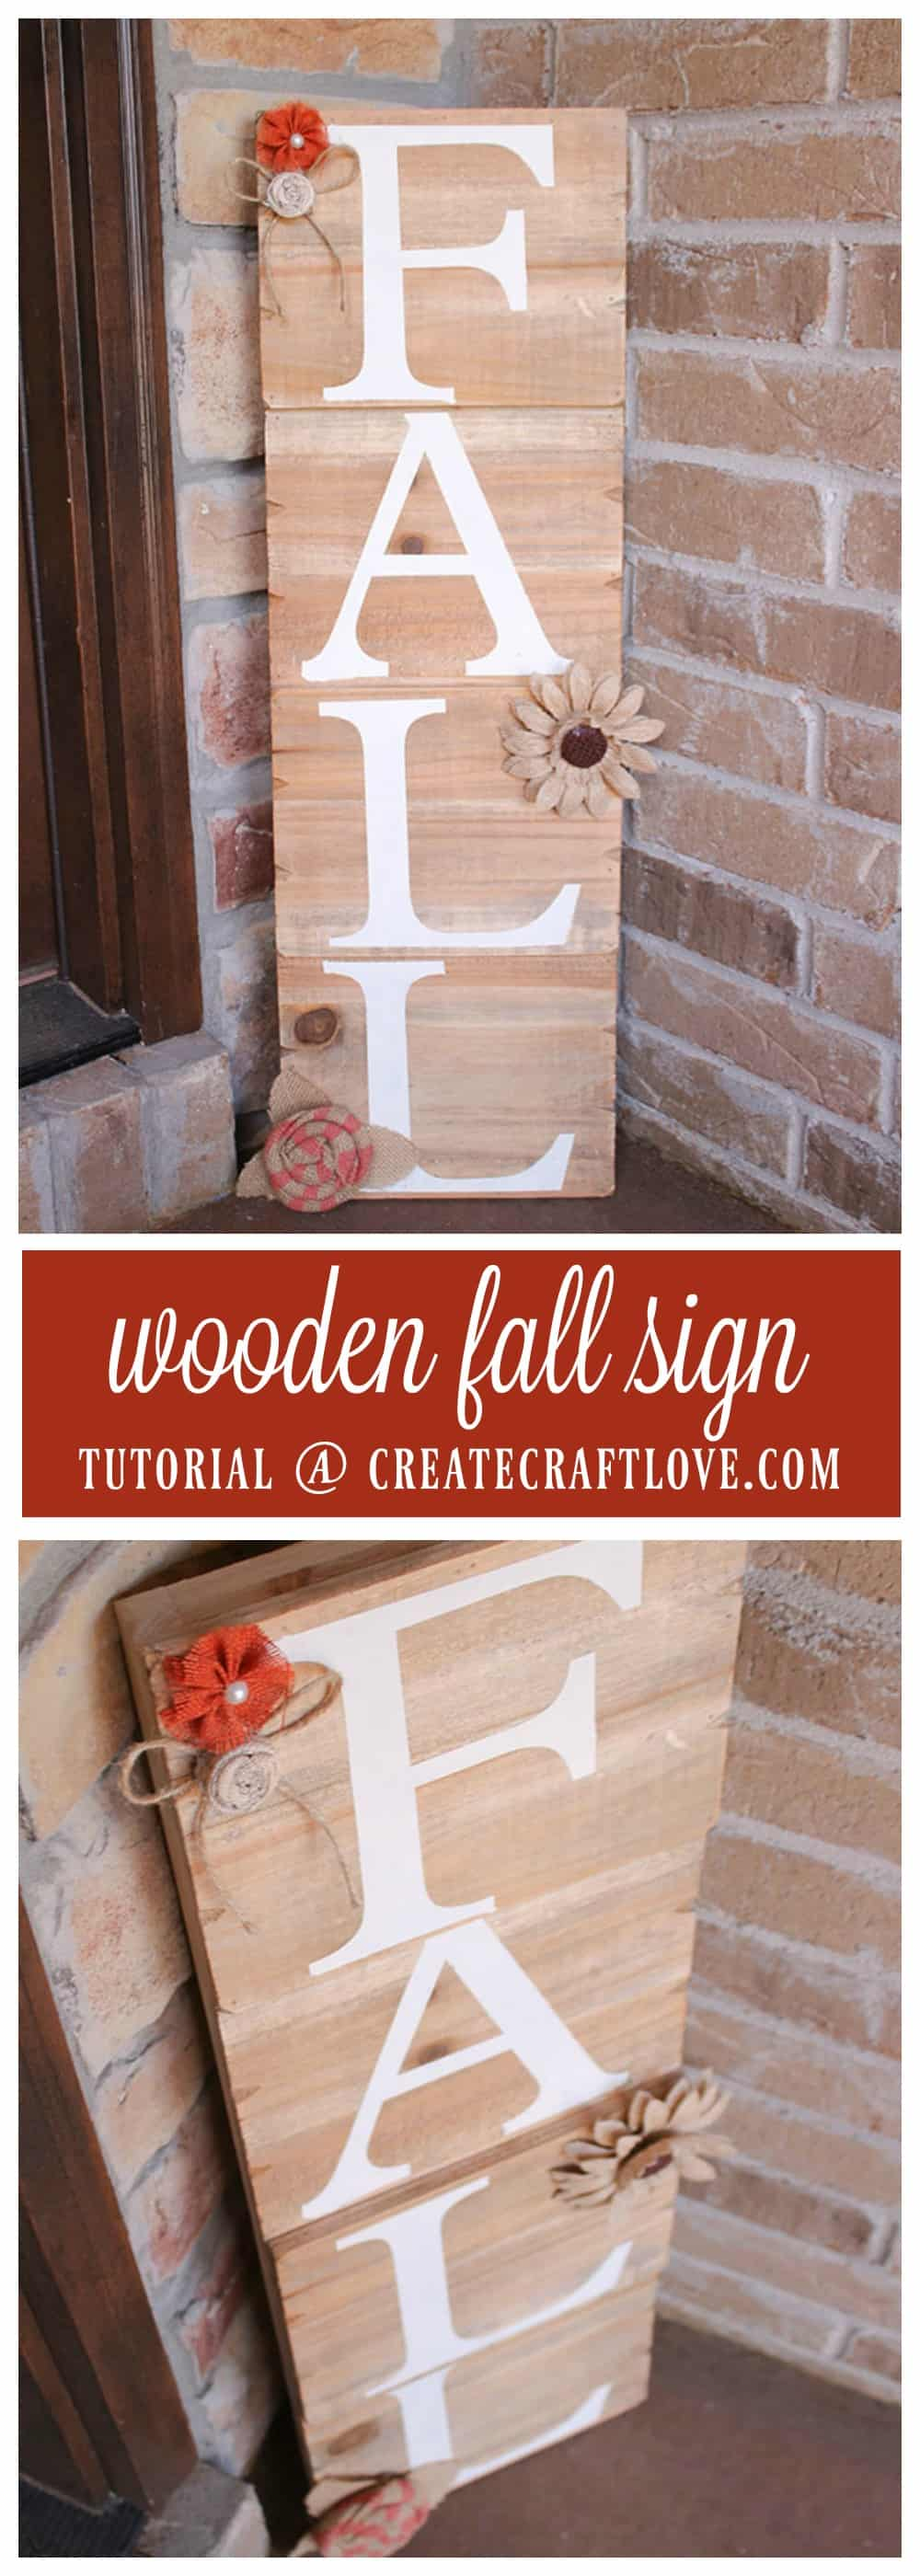 You can make this easy Wooden Fall Sign too with some stencils and paint!